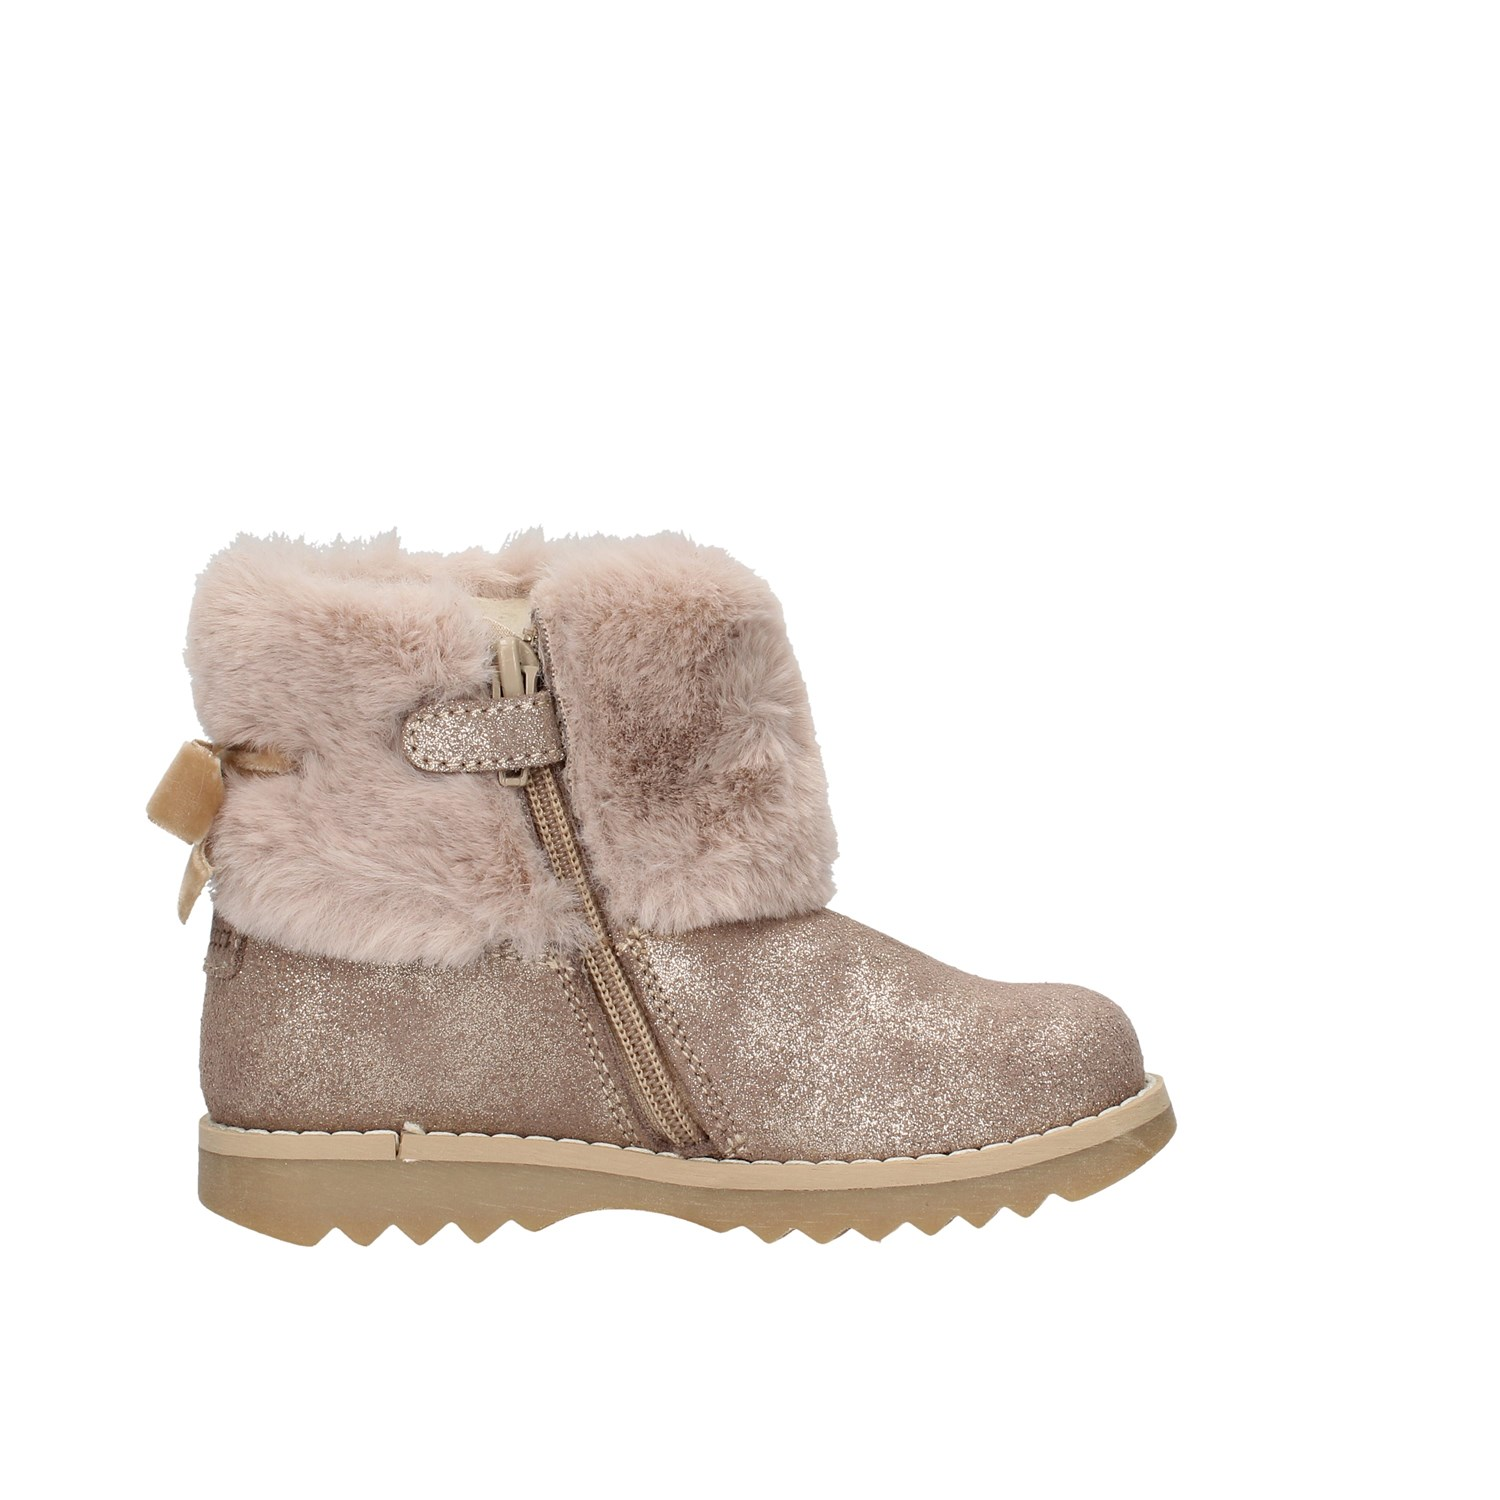 Balducci Shoes Child boots PINK MATR1953